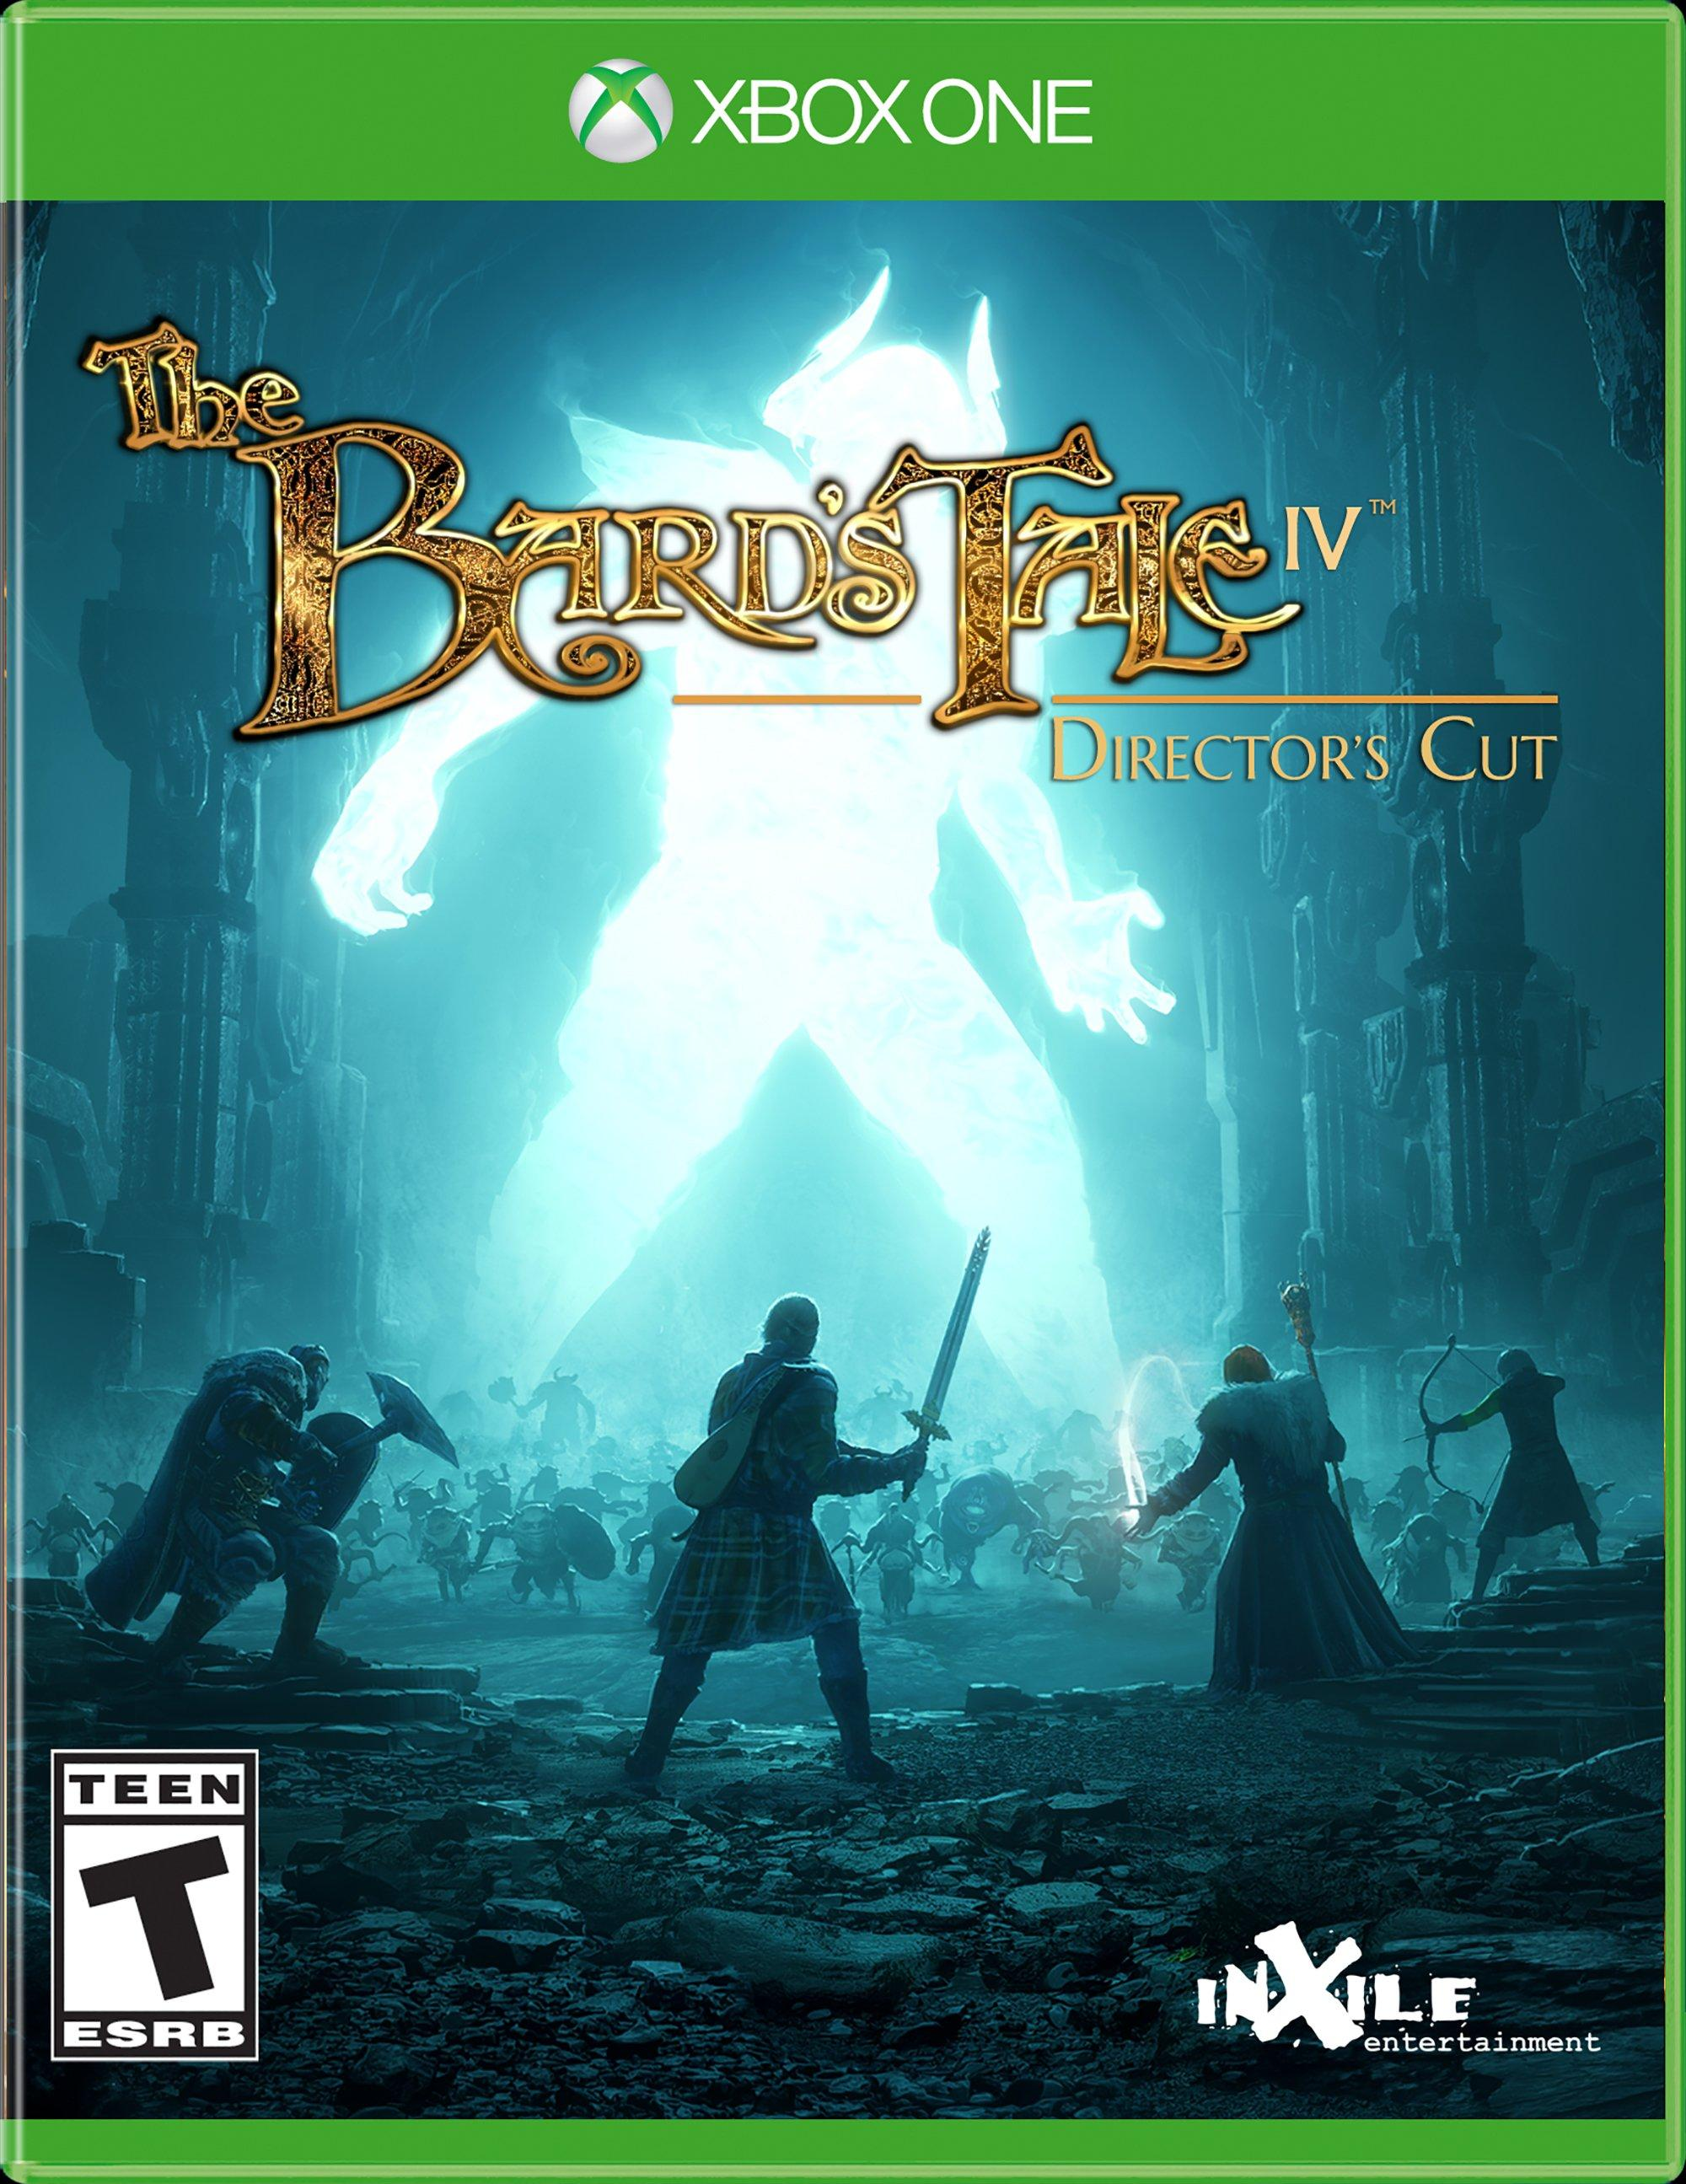 Bards Tale IV, The